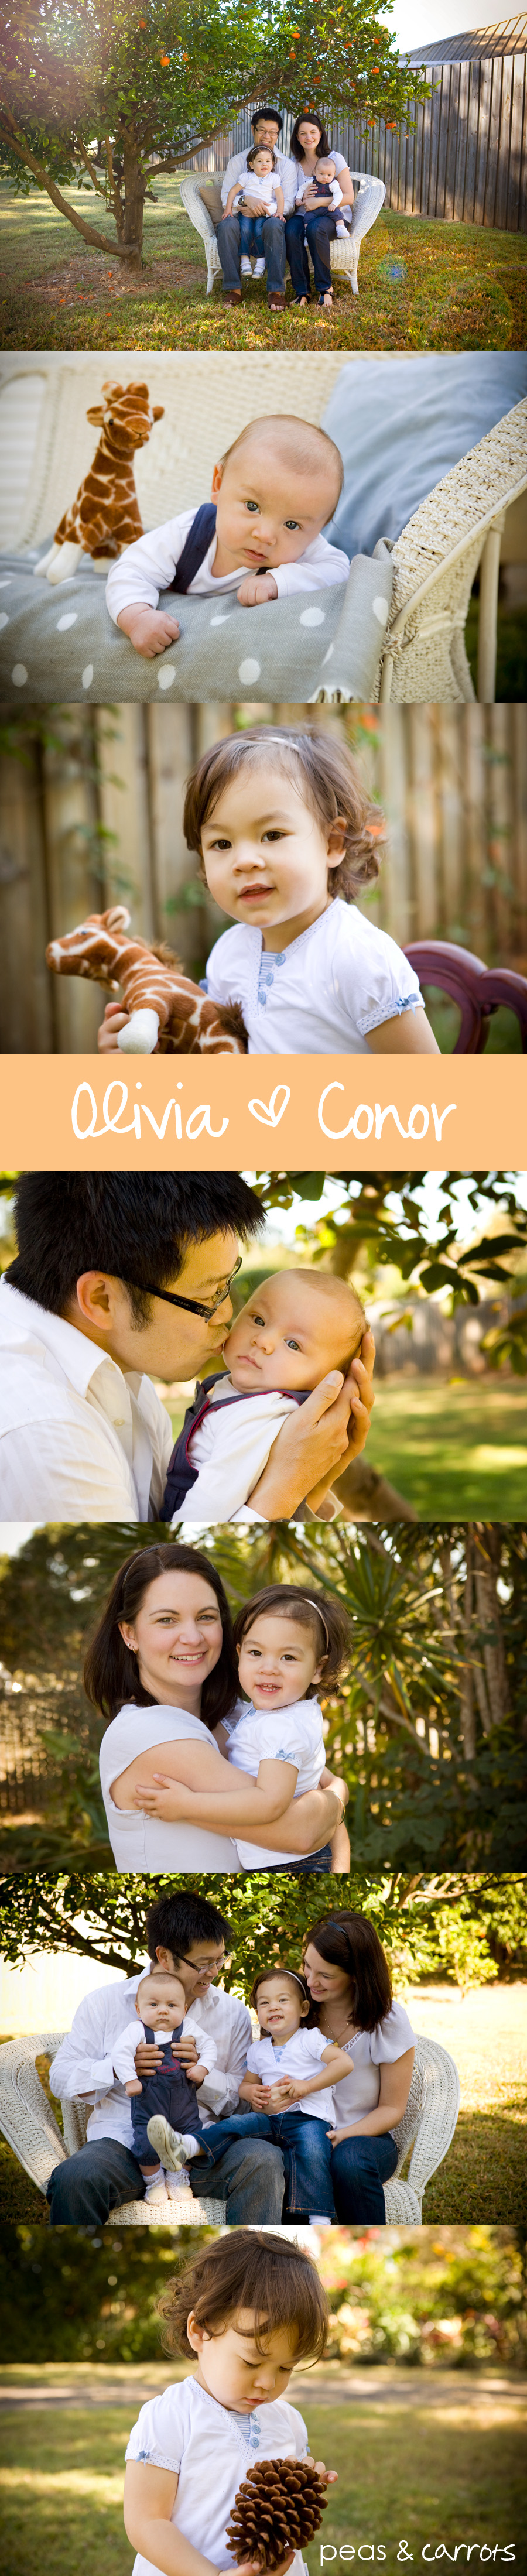 Brisbane Childrens Photographer Nikki Paice ~ Peas + Carrots Photography